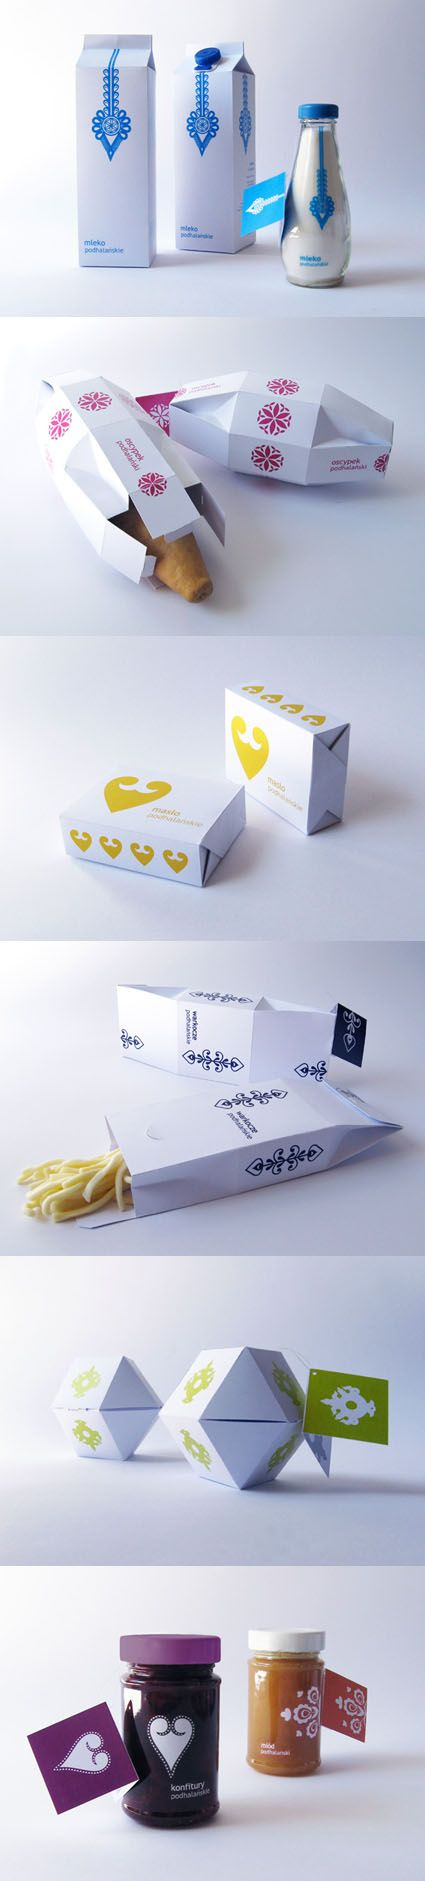 food packaging folk style: Graphic Design, Branding Design, Food Packaging Design, Package Design, Packaging Branding, Packaging Inspiration, Packaging Food, Design Packaging, Design Package